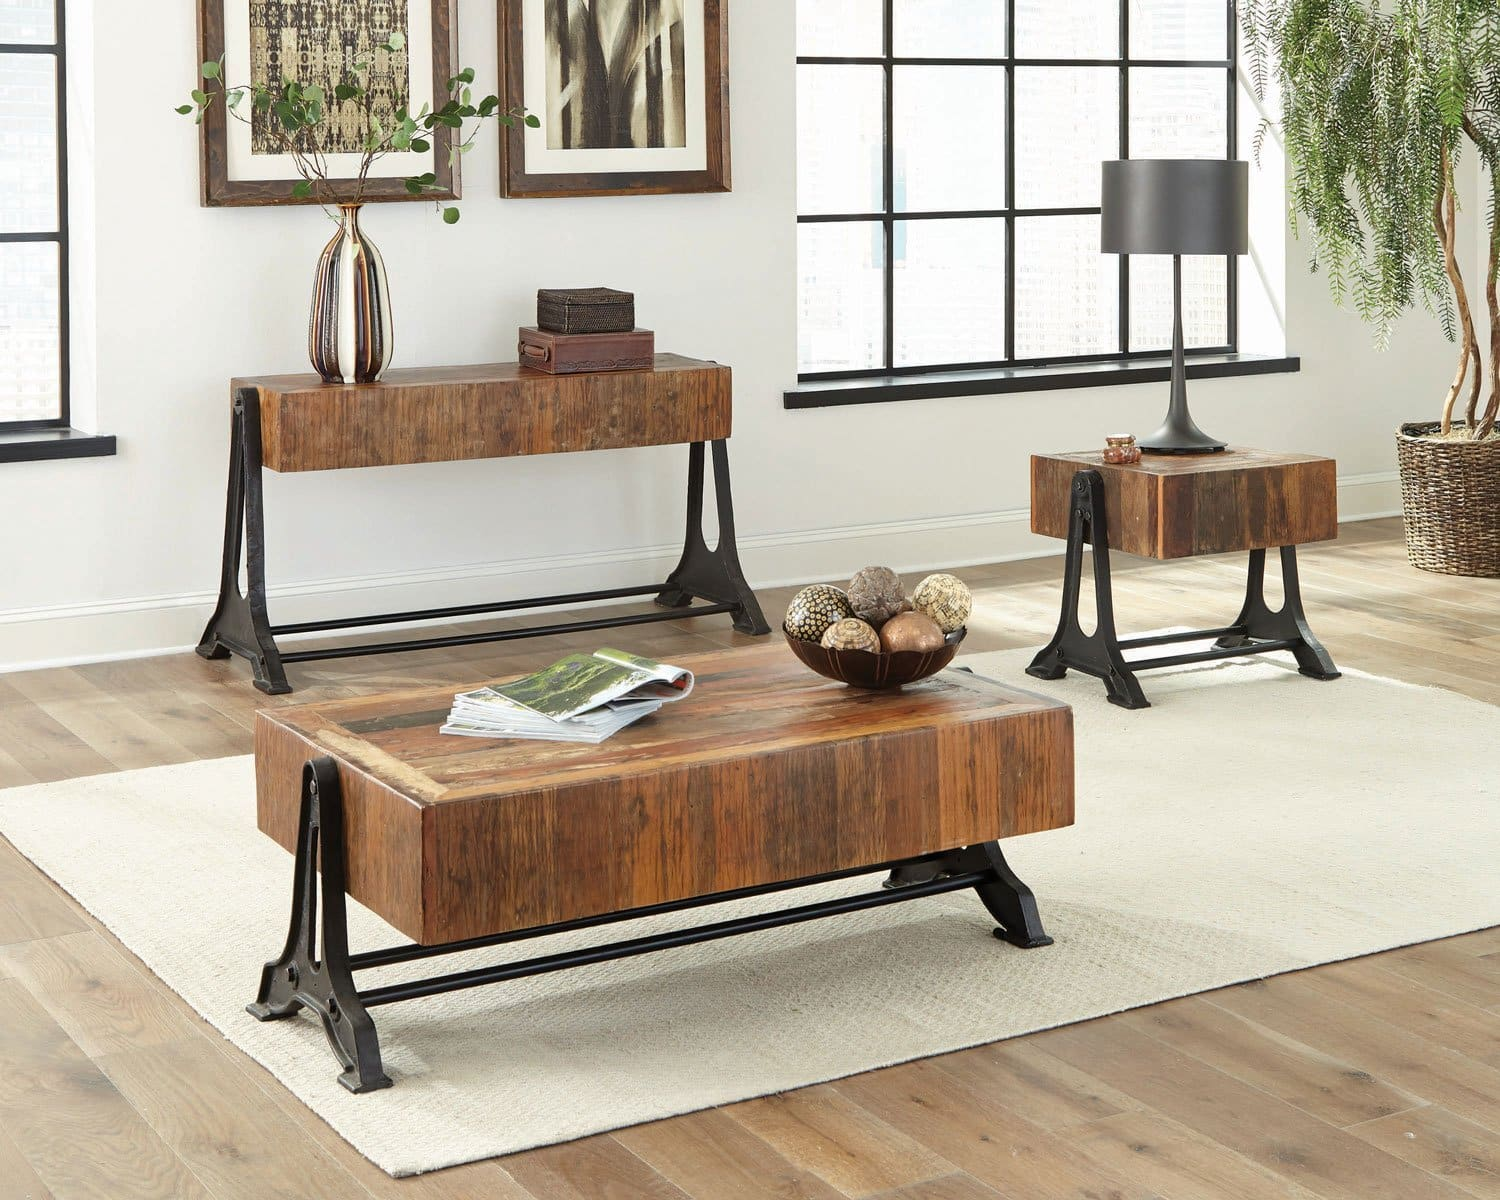 Asherton Industrial Wood Accent Tables, Living Room Tables